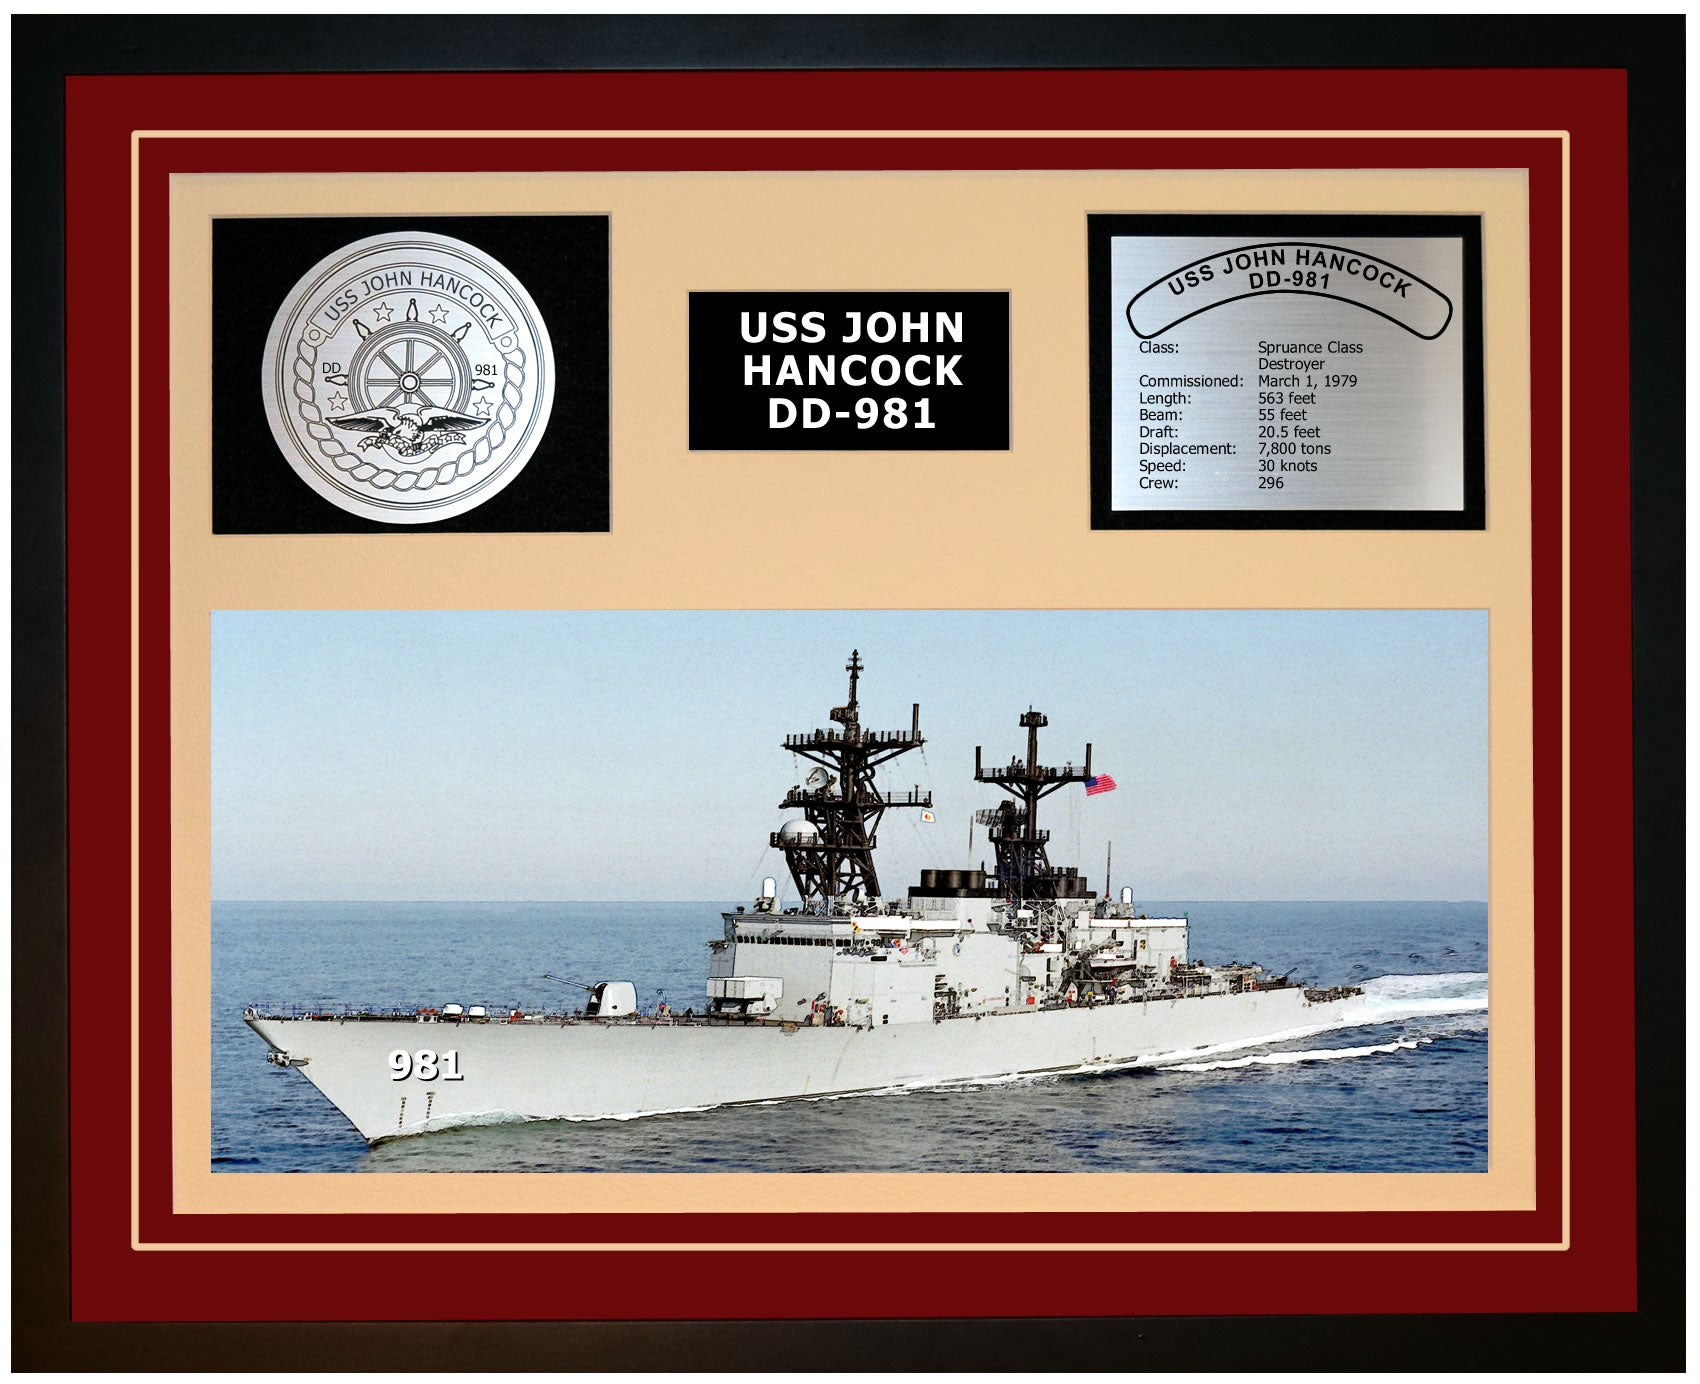 USS JOHN HANCOCK DD-981 Framed Navy Ship Display Burgundy